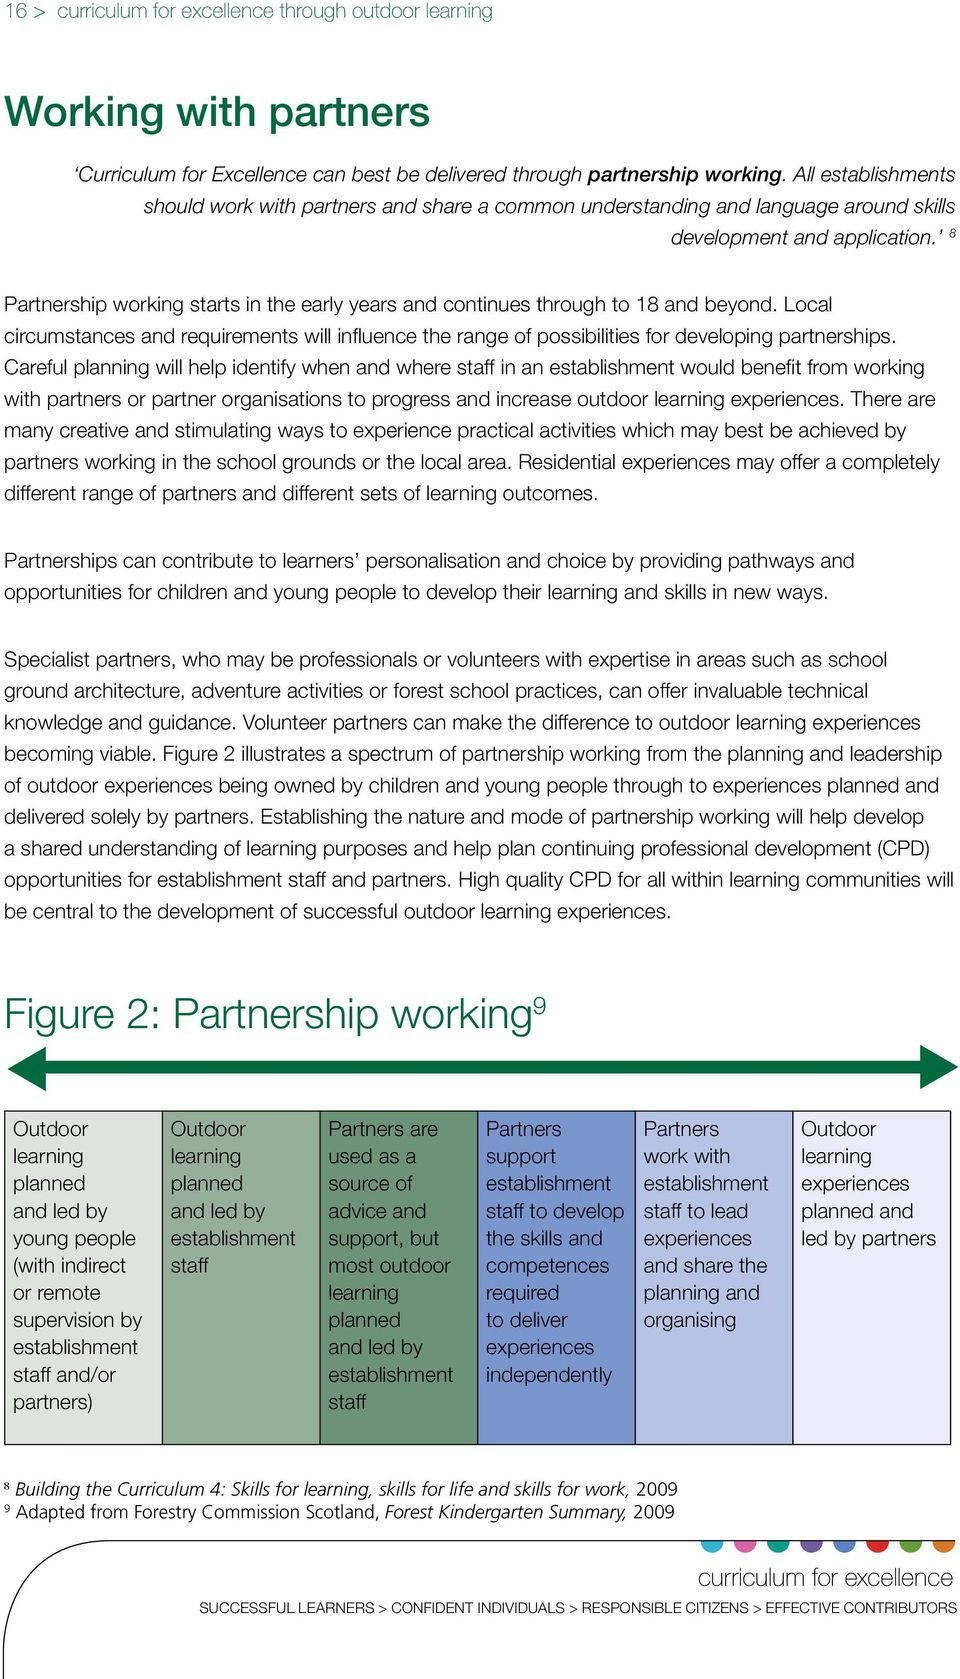 8 Partnership working starts in the early years and continues through to 18 and beyond. Local circumstances and requirements will influence the range of possibilities for developing partnerships.